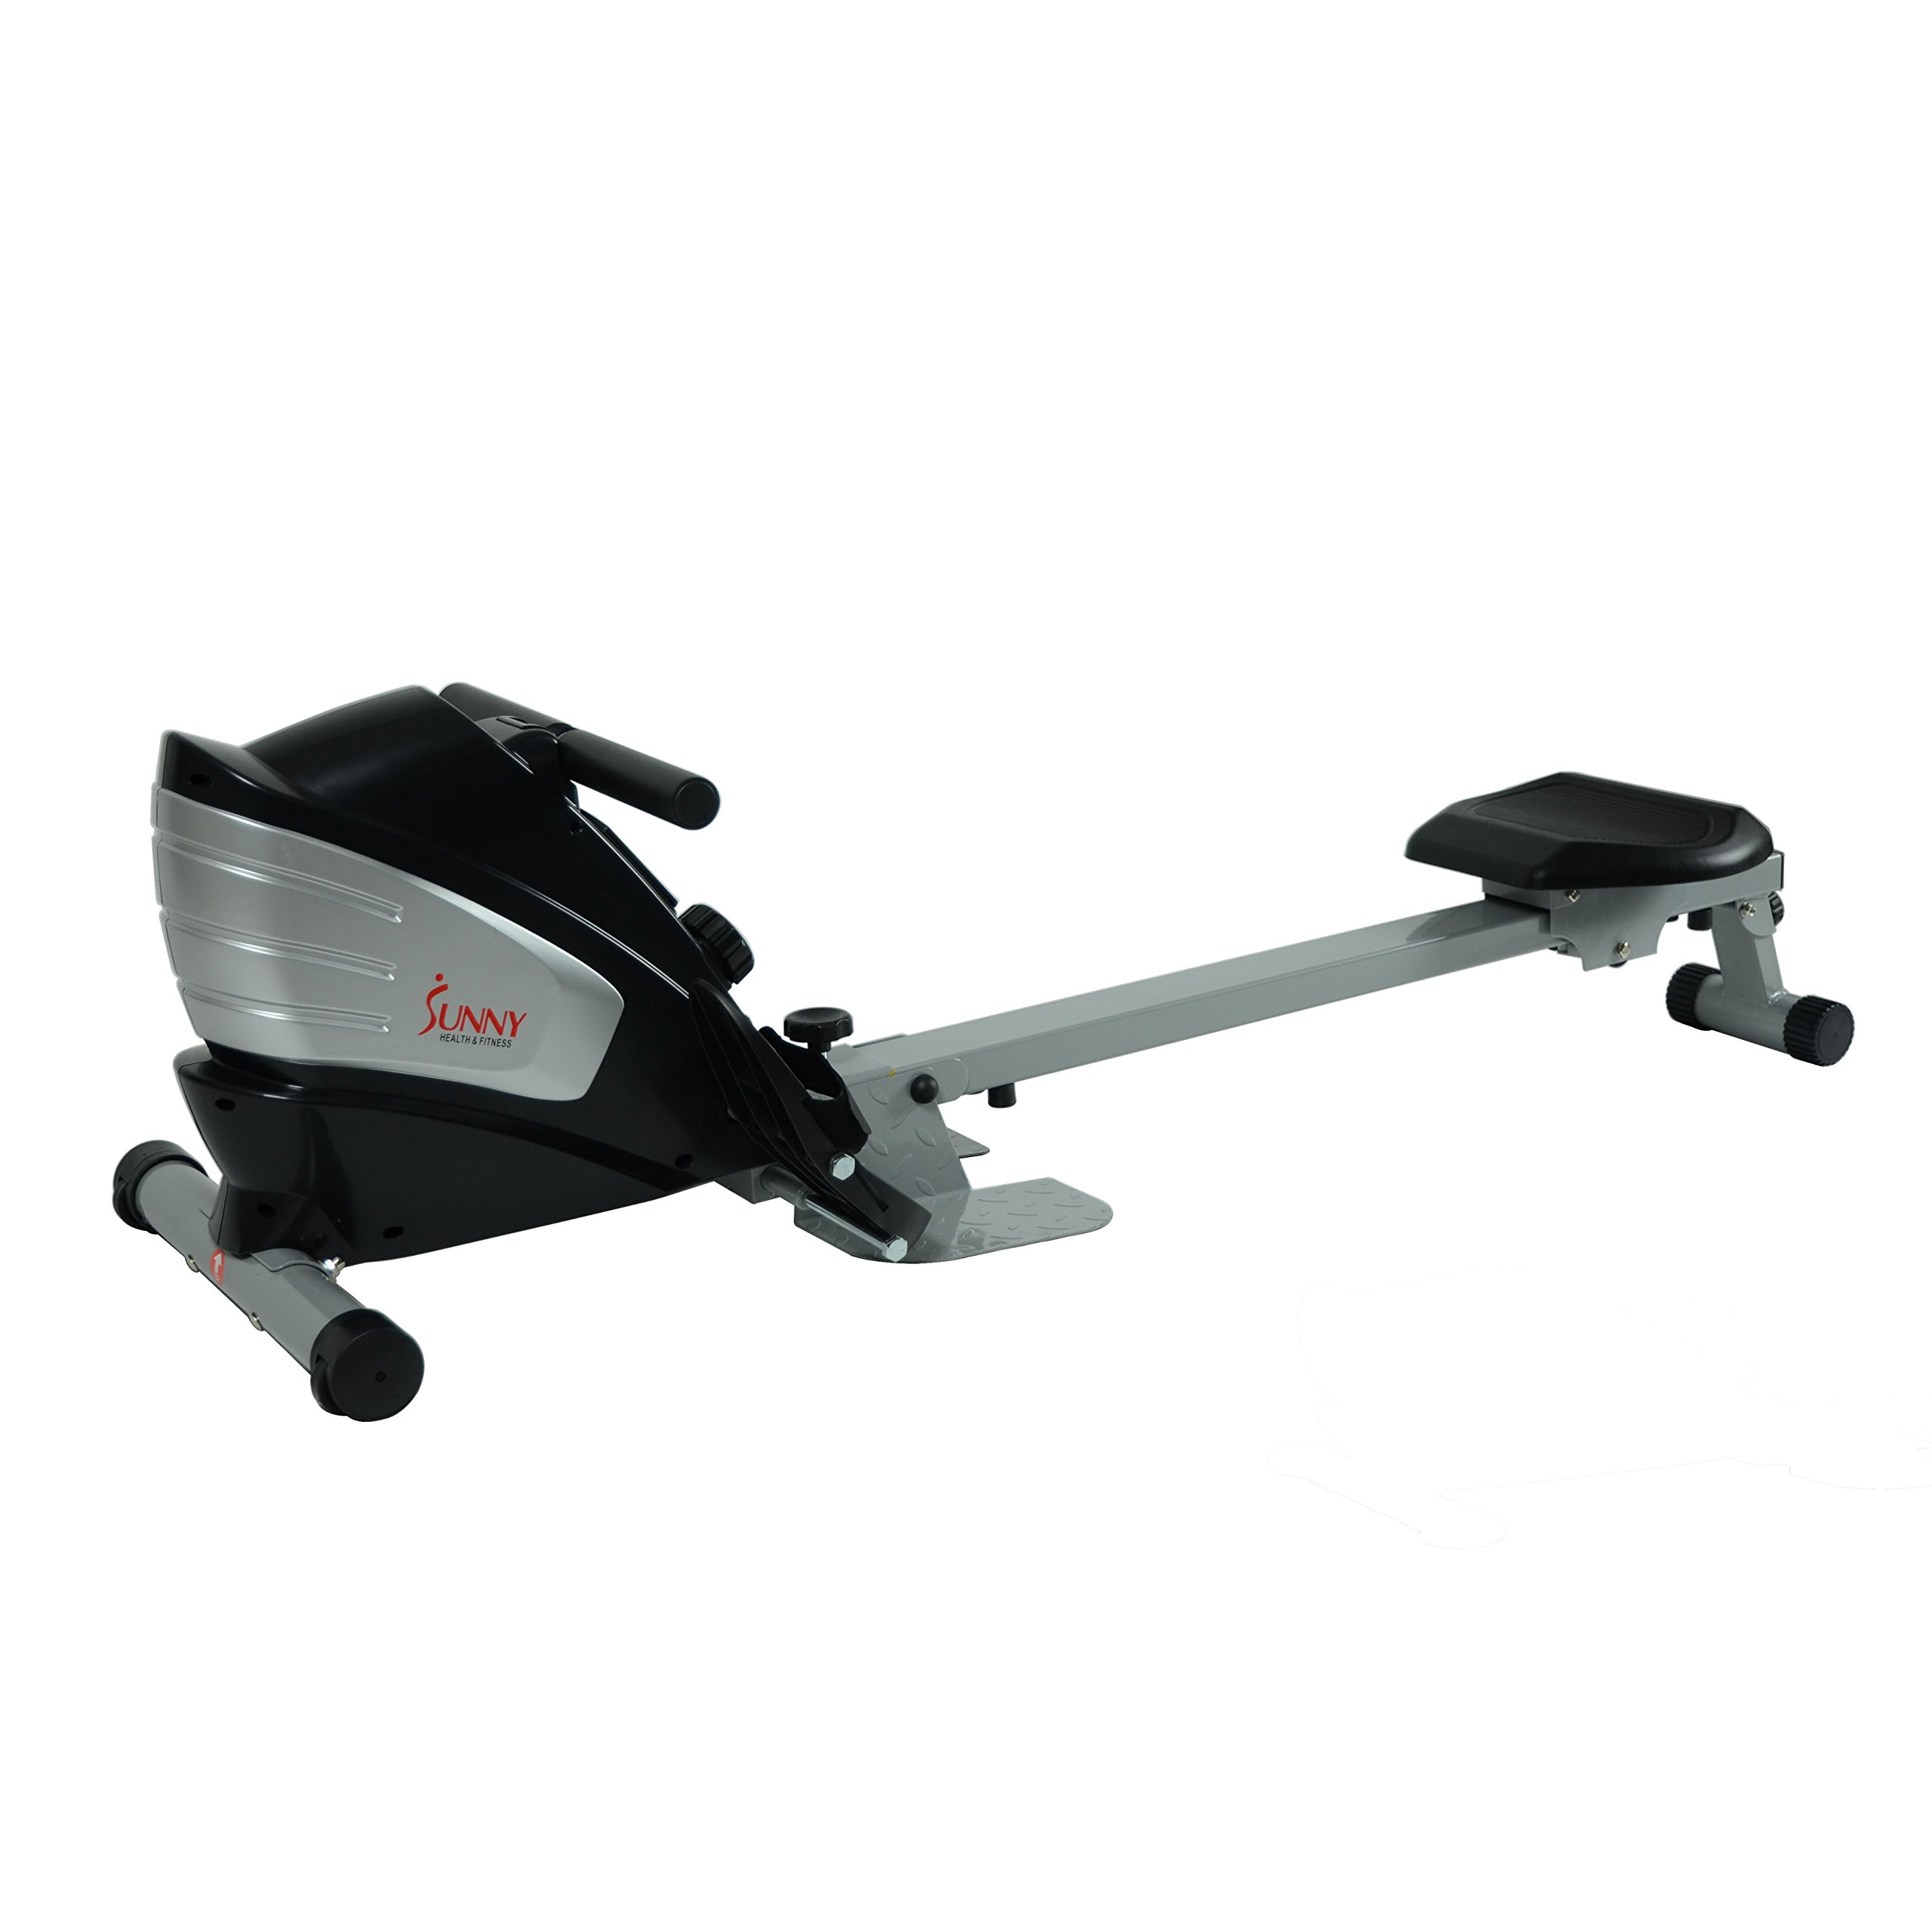 Sunny Health & Fitness SF-RW5622 Dual Function Magnetic Rowing Machine Rower w/ LCD Monitor by Sunny Health & Fitness